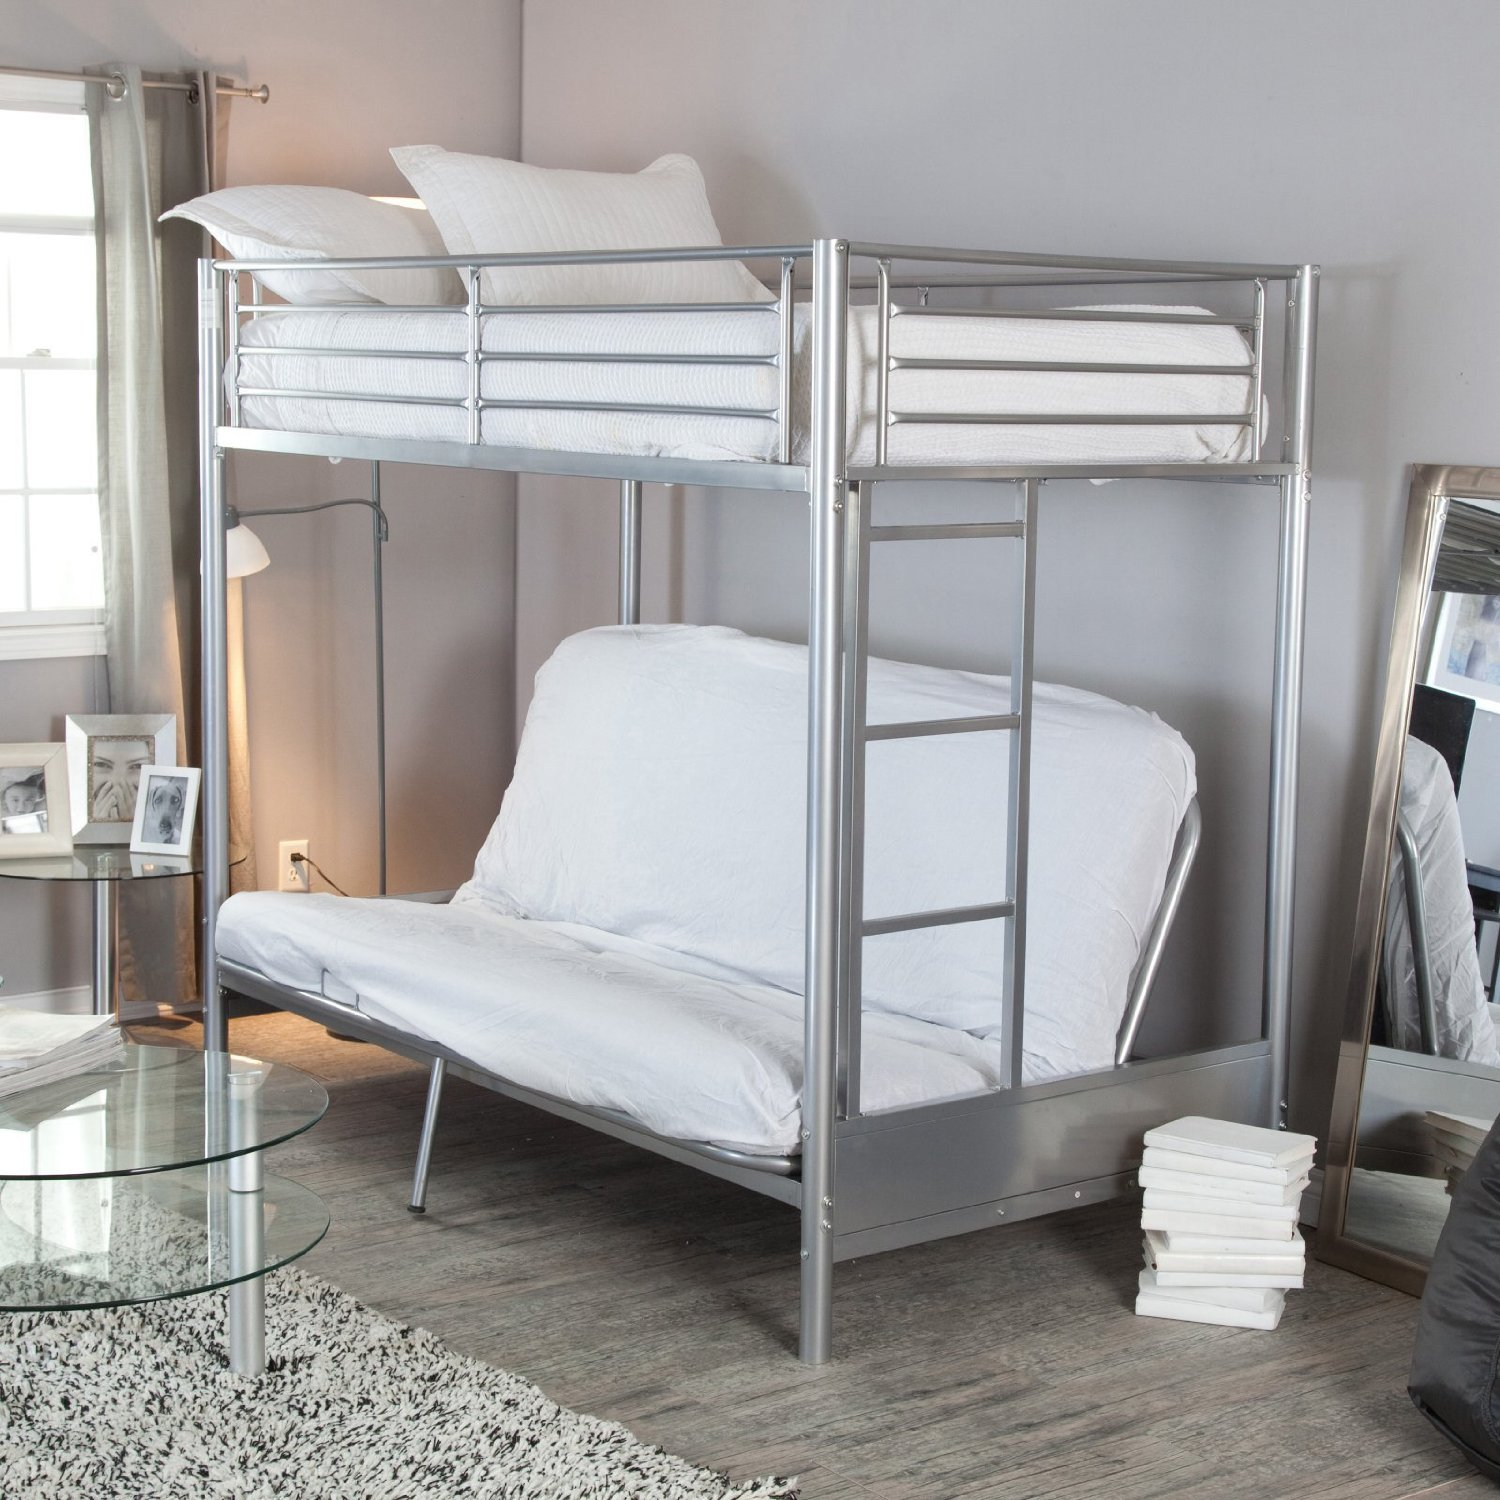 Total Fab Metal Wood Loft Beds With Sofa Underneath